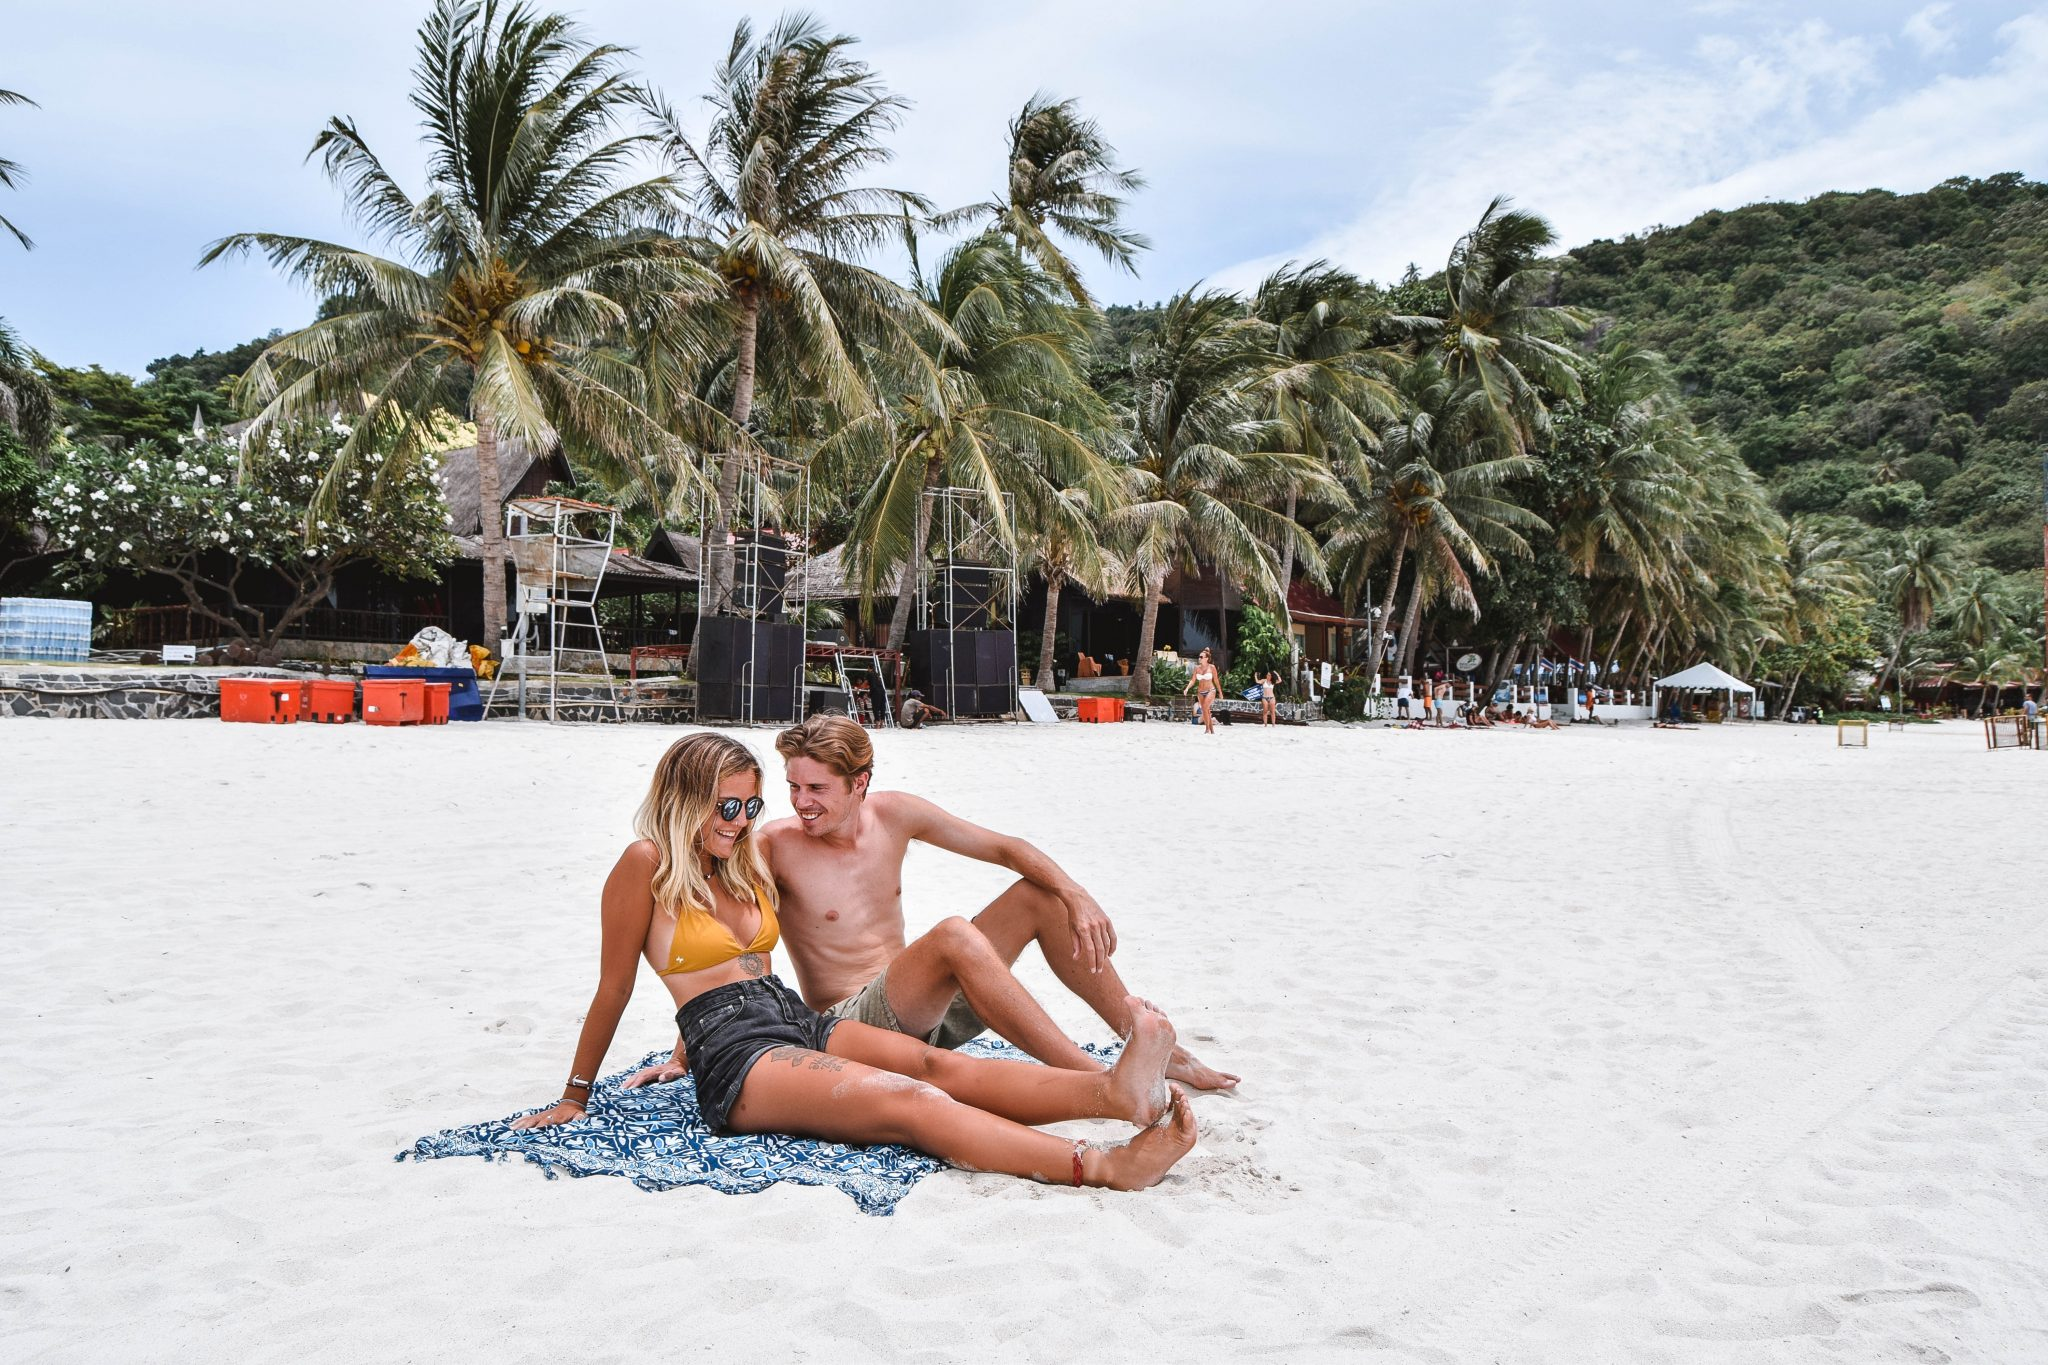 Wanderers & Warriors - Charlie & Lauren UK Travel Couple - Haad Rin Koh Phangan - Haad Rin Beach Koh Phangan Best Beaches Koh Phangan Beaches